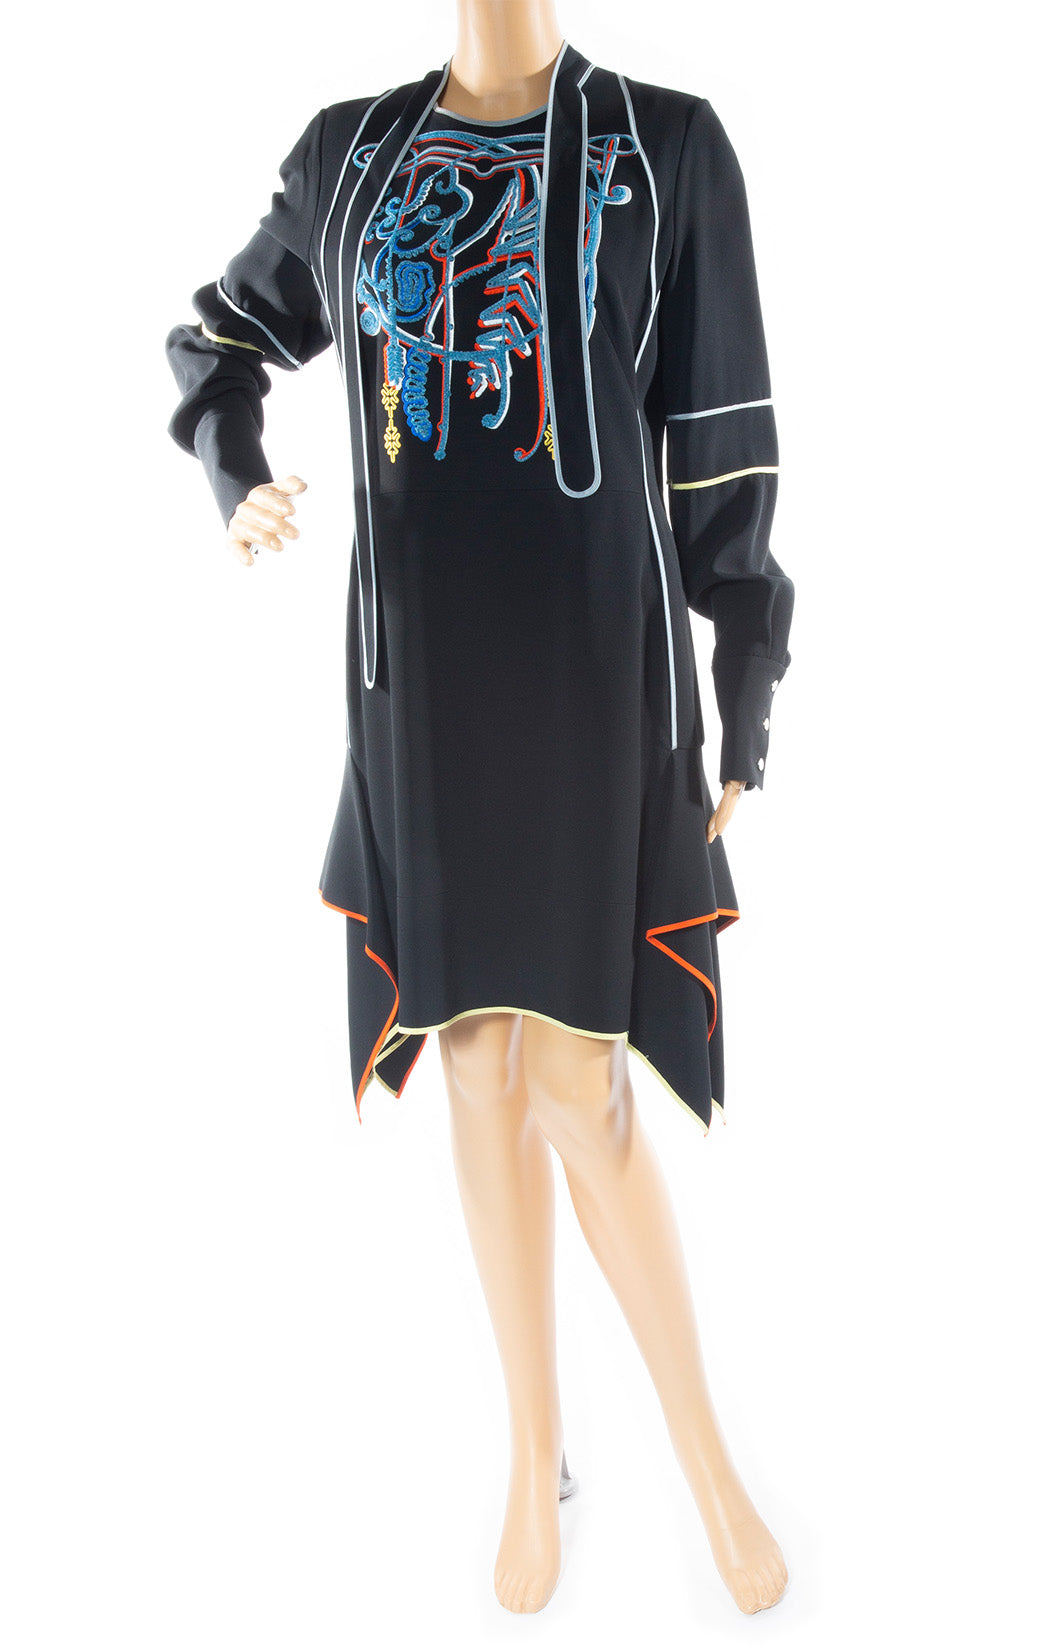 Front view of PETER PILOTTO Dress Size: US 10